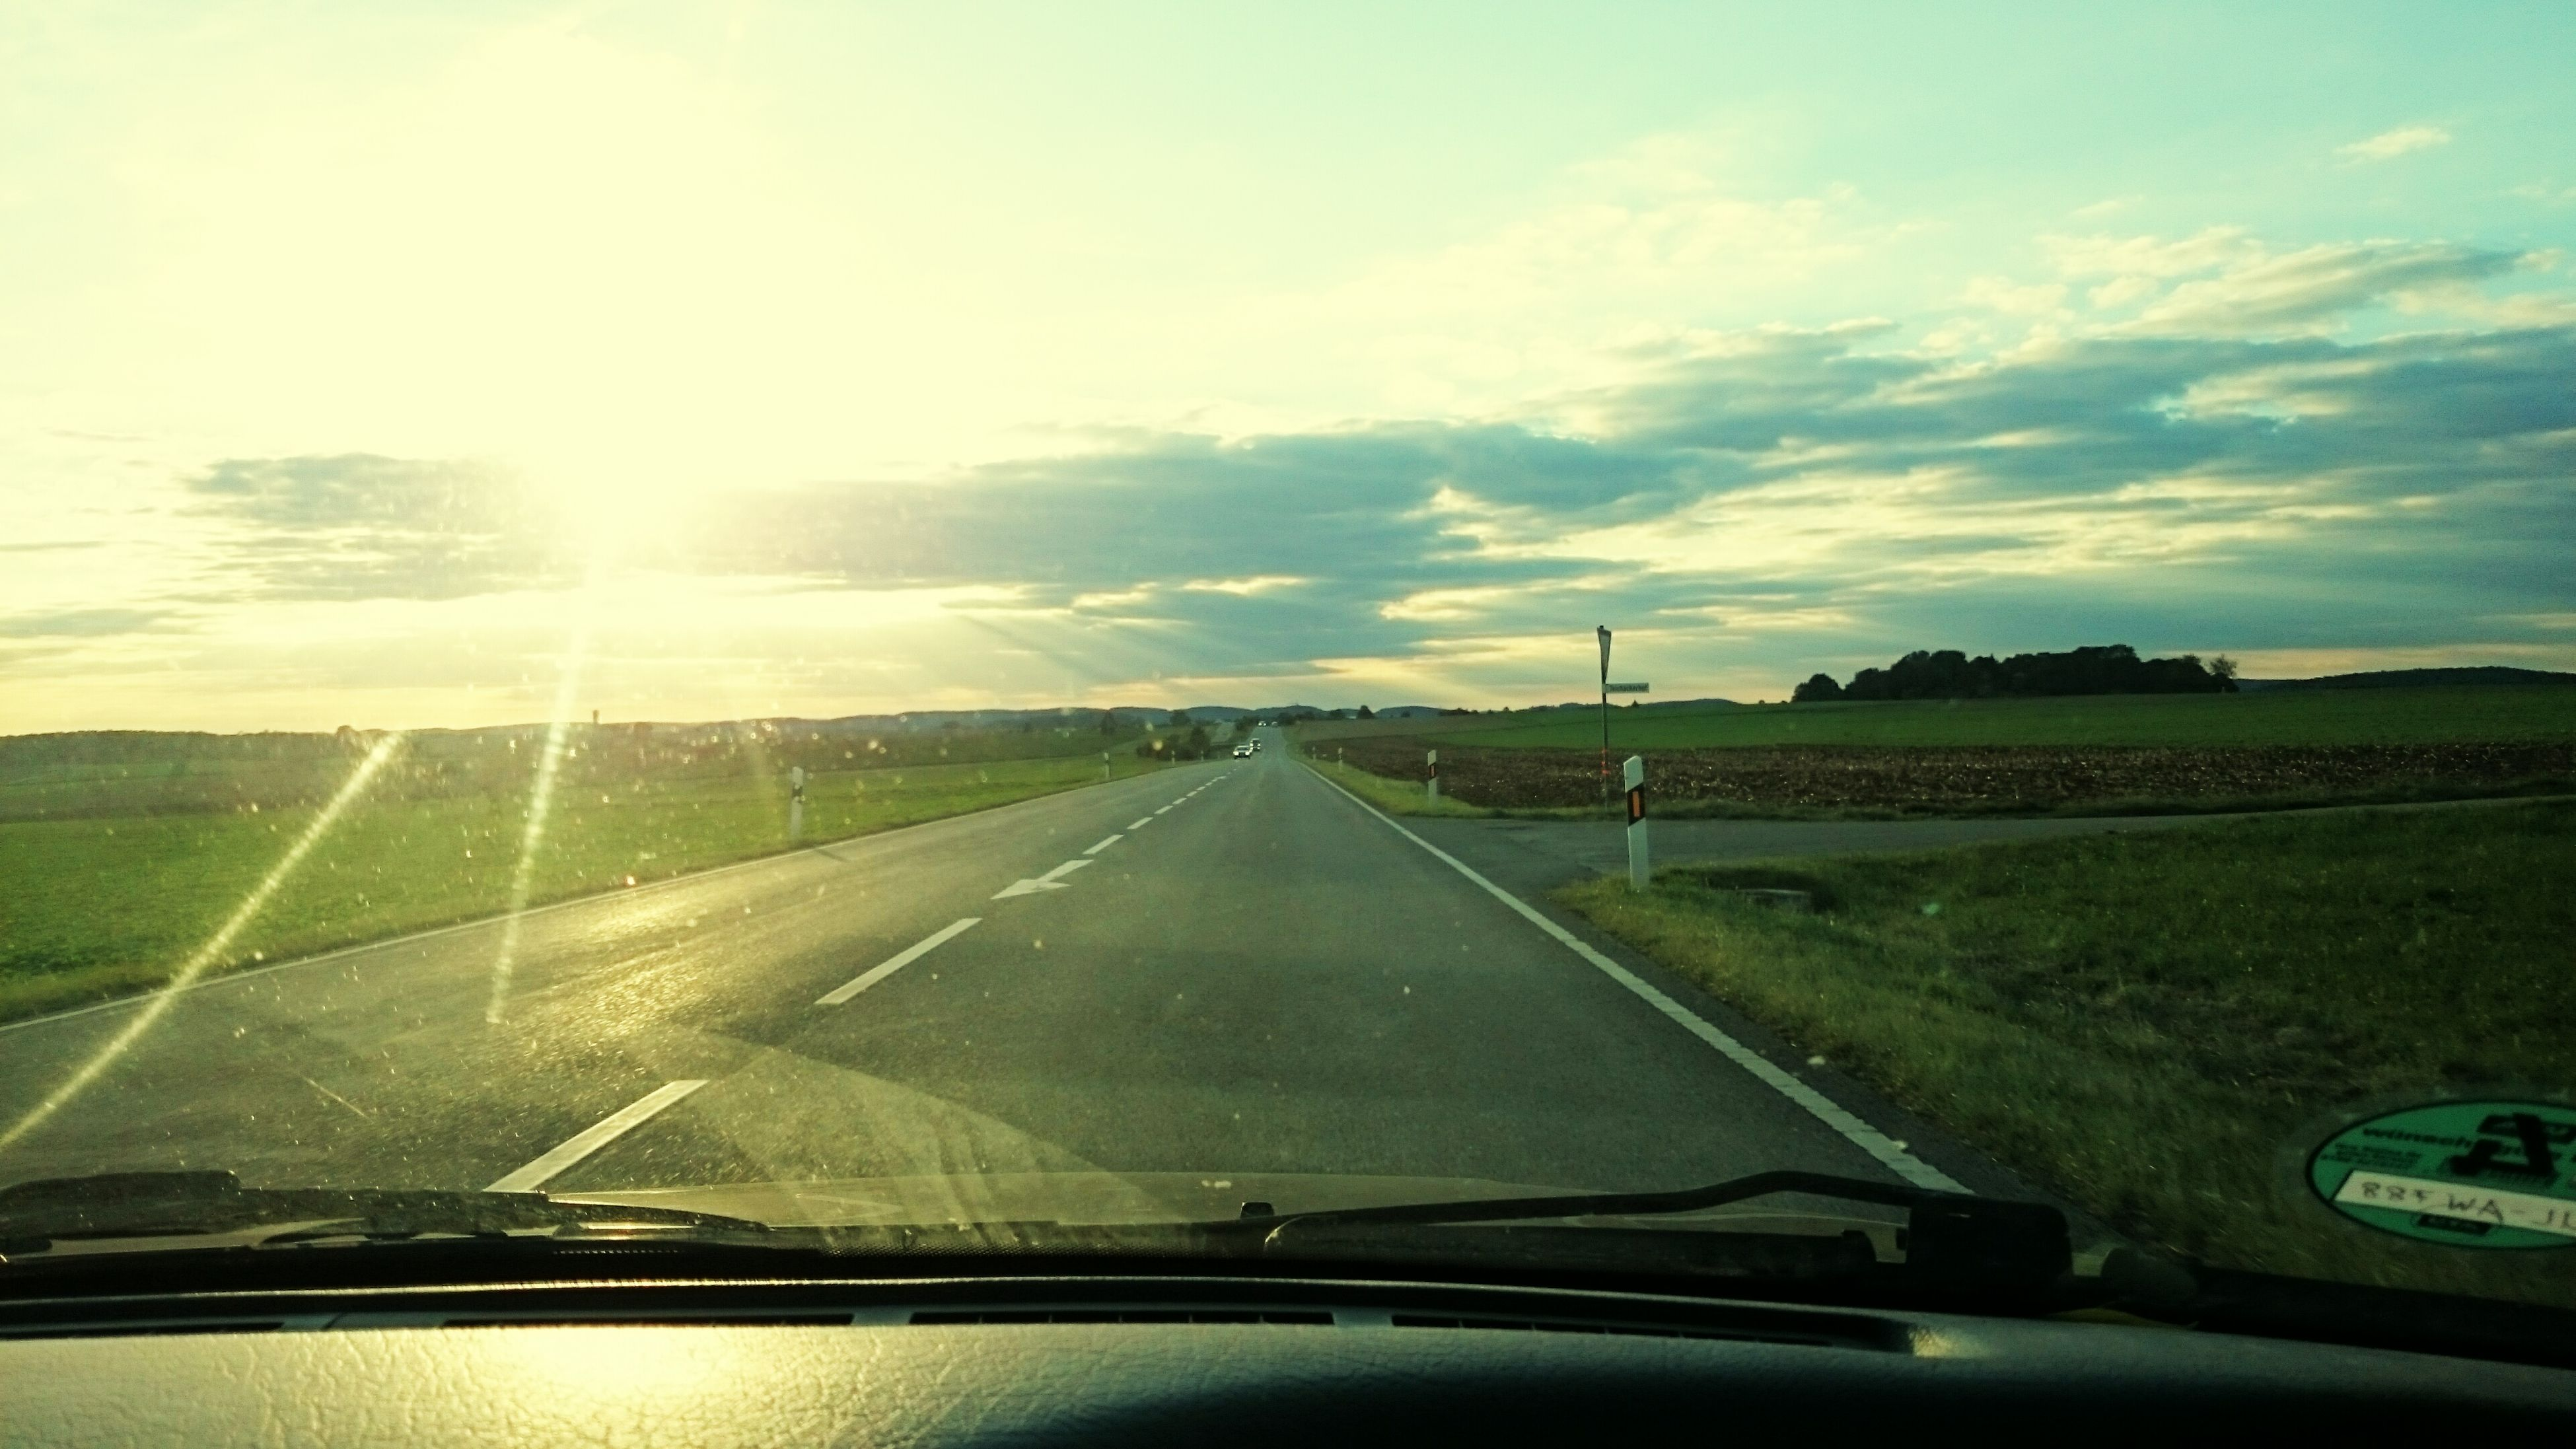 transportation, car, mode of transport, road, land vehicle, windshield, vehicle interior, the way forward, glass - material, diminishing perspective, road marking, car interior, sky, transparent, vanishing point, car point of view, travel, on the move, country road, cloud - sky